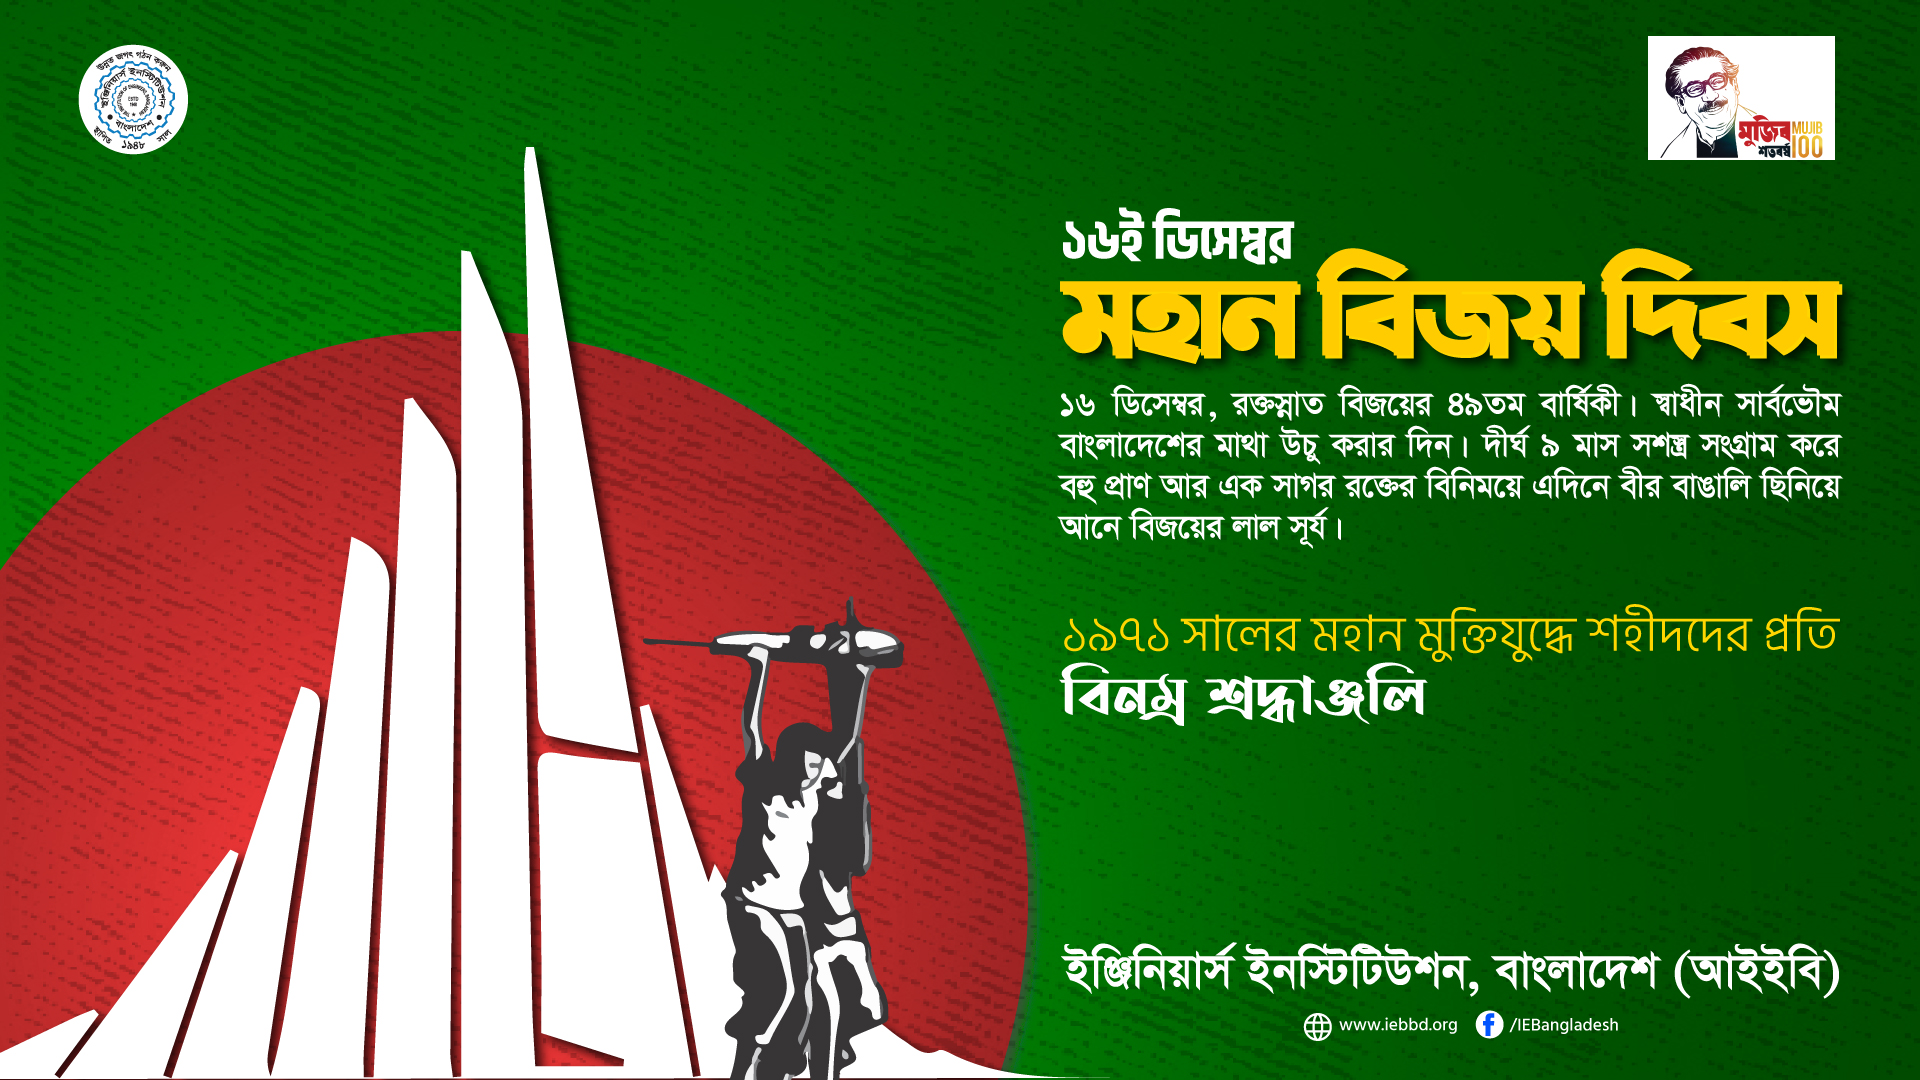 16 December Victory Day: Minds Without Fear, Heads Held High